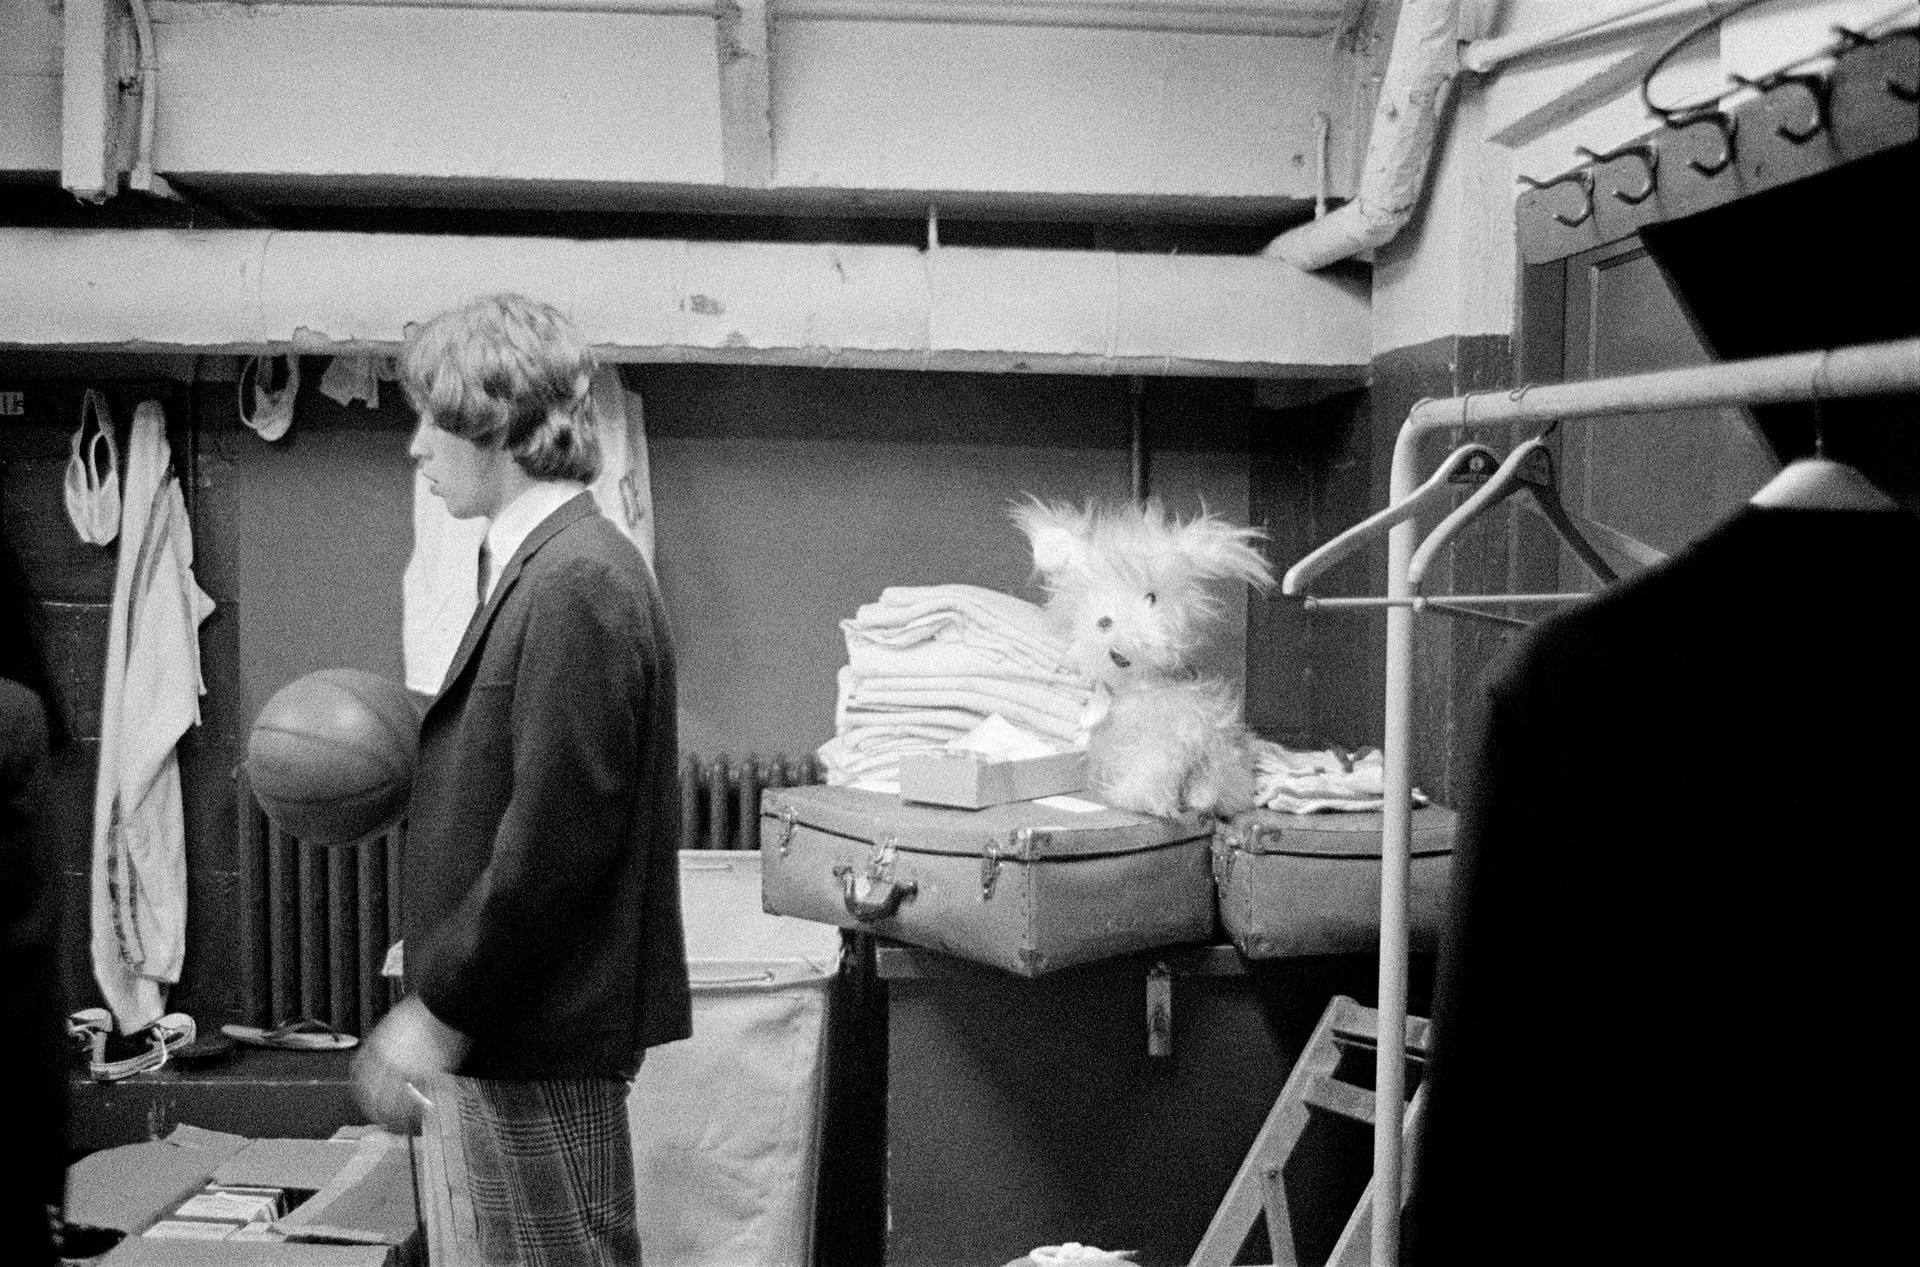 Mick backstage at the Boston Garden (1965) 'This photo of Mick with a basketball was taken at the stadium home of the Boston Celtics team, who were topping the league at the time. Their discarded clothes and jockstraps littered the room, which also played host to various cuddly toys left by the local fan club'